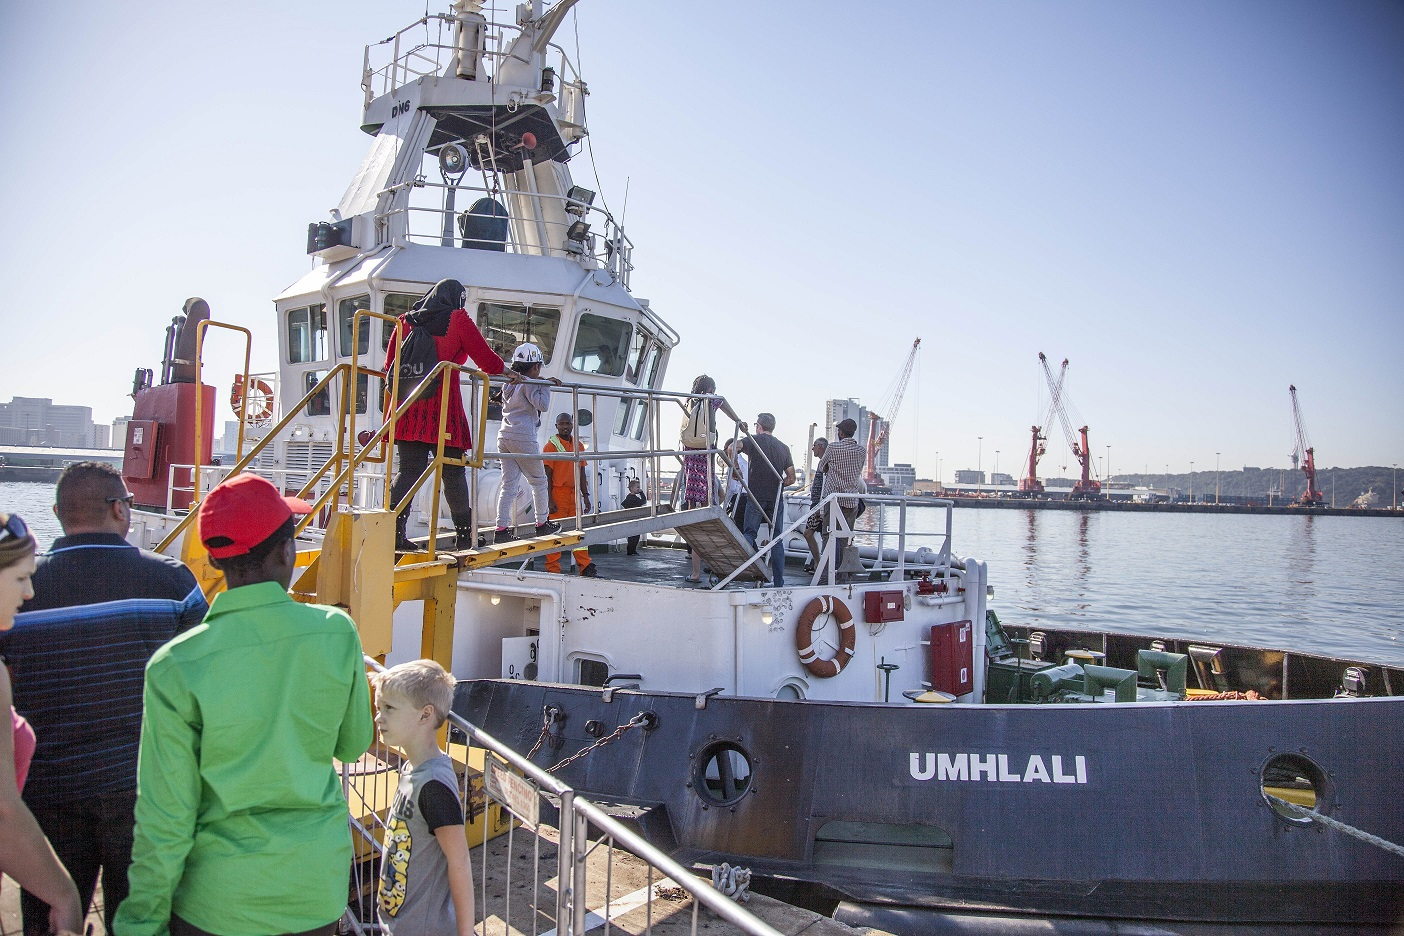 The festival line up includes tours of South African Navy ships, tugboat displays, a careers exhibition focusing on maritime vocations